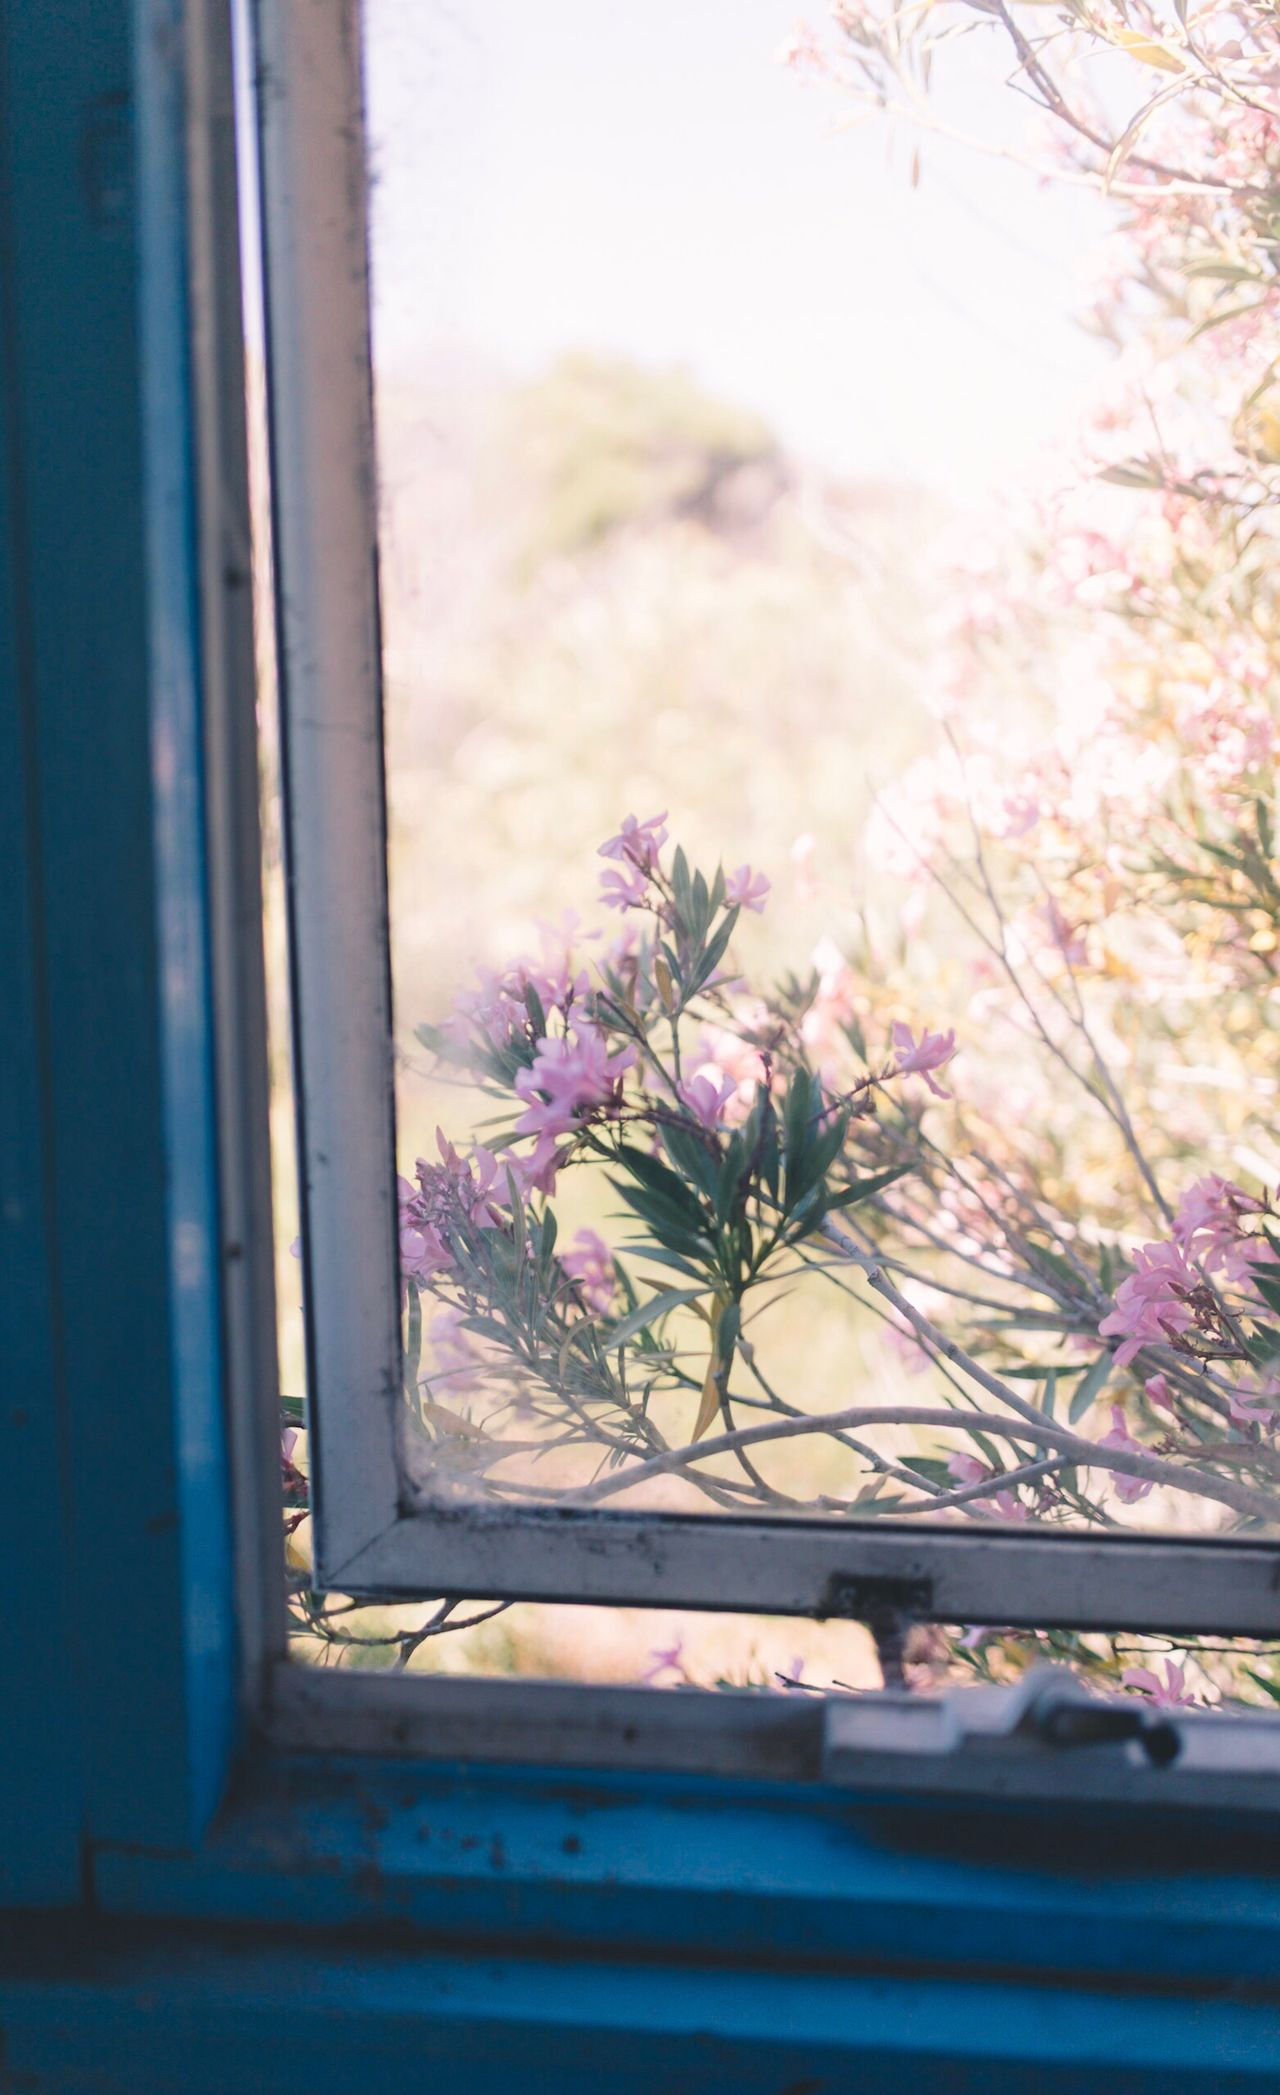 The Week On EyeEm No People Day Nature Outdoors Nature Fragility Window Flower Sky Looking Through Window Tree Plant Beauty In Nature Indoors  Close-up